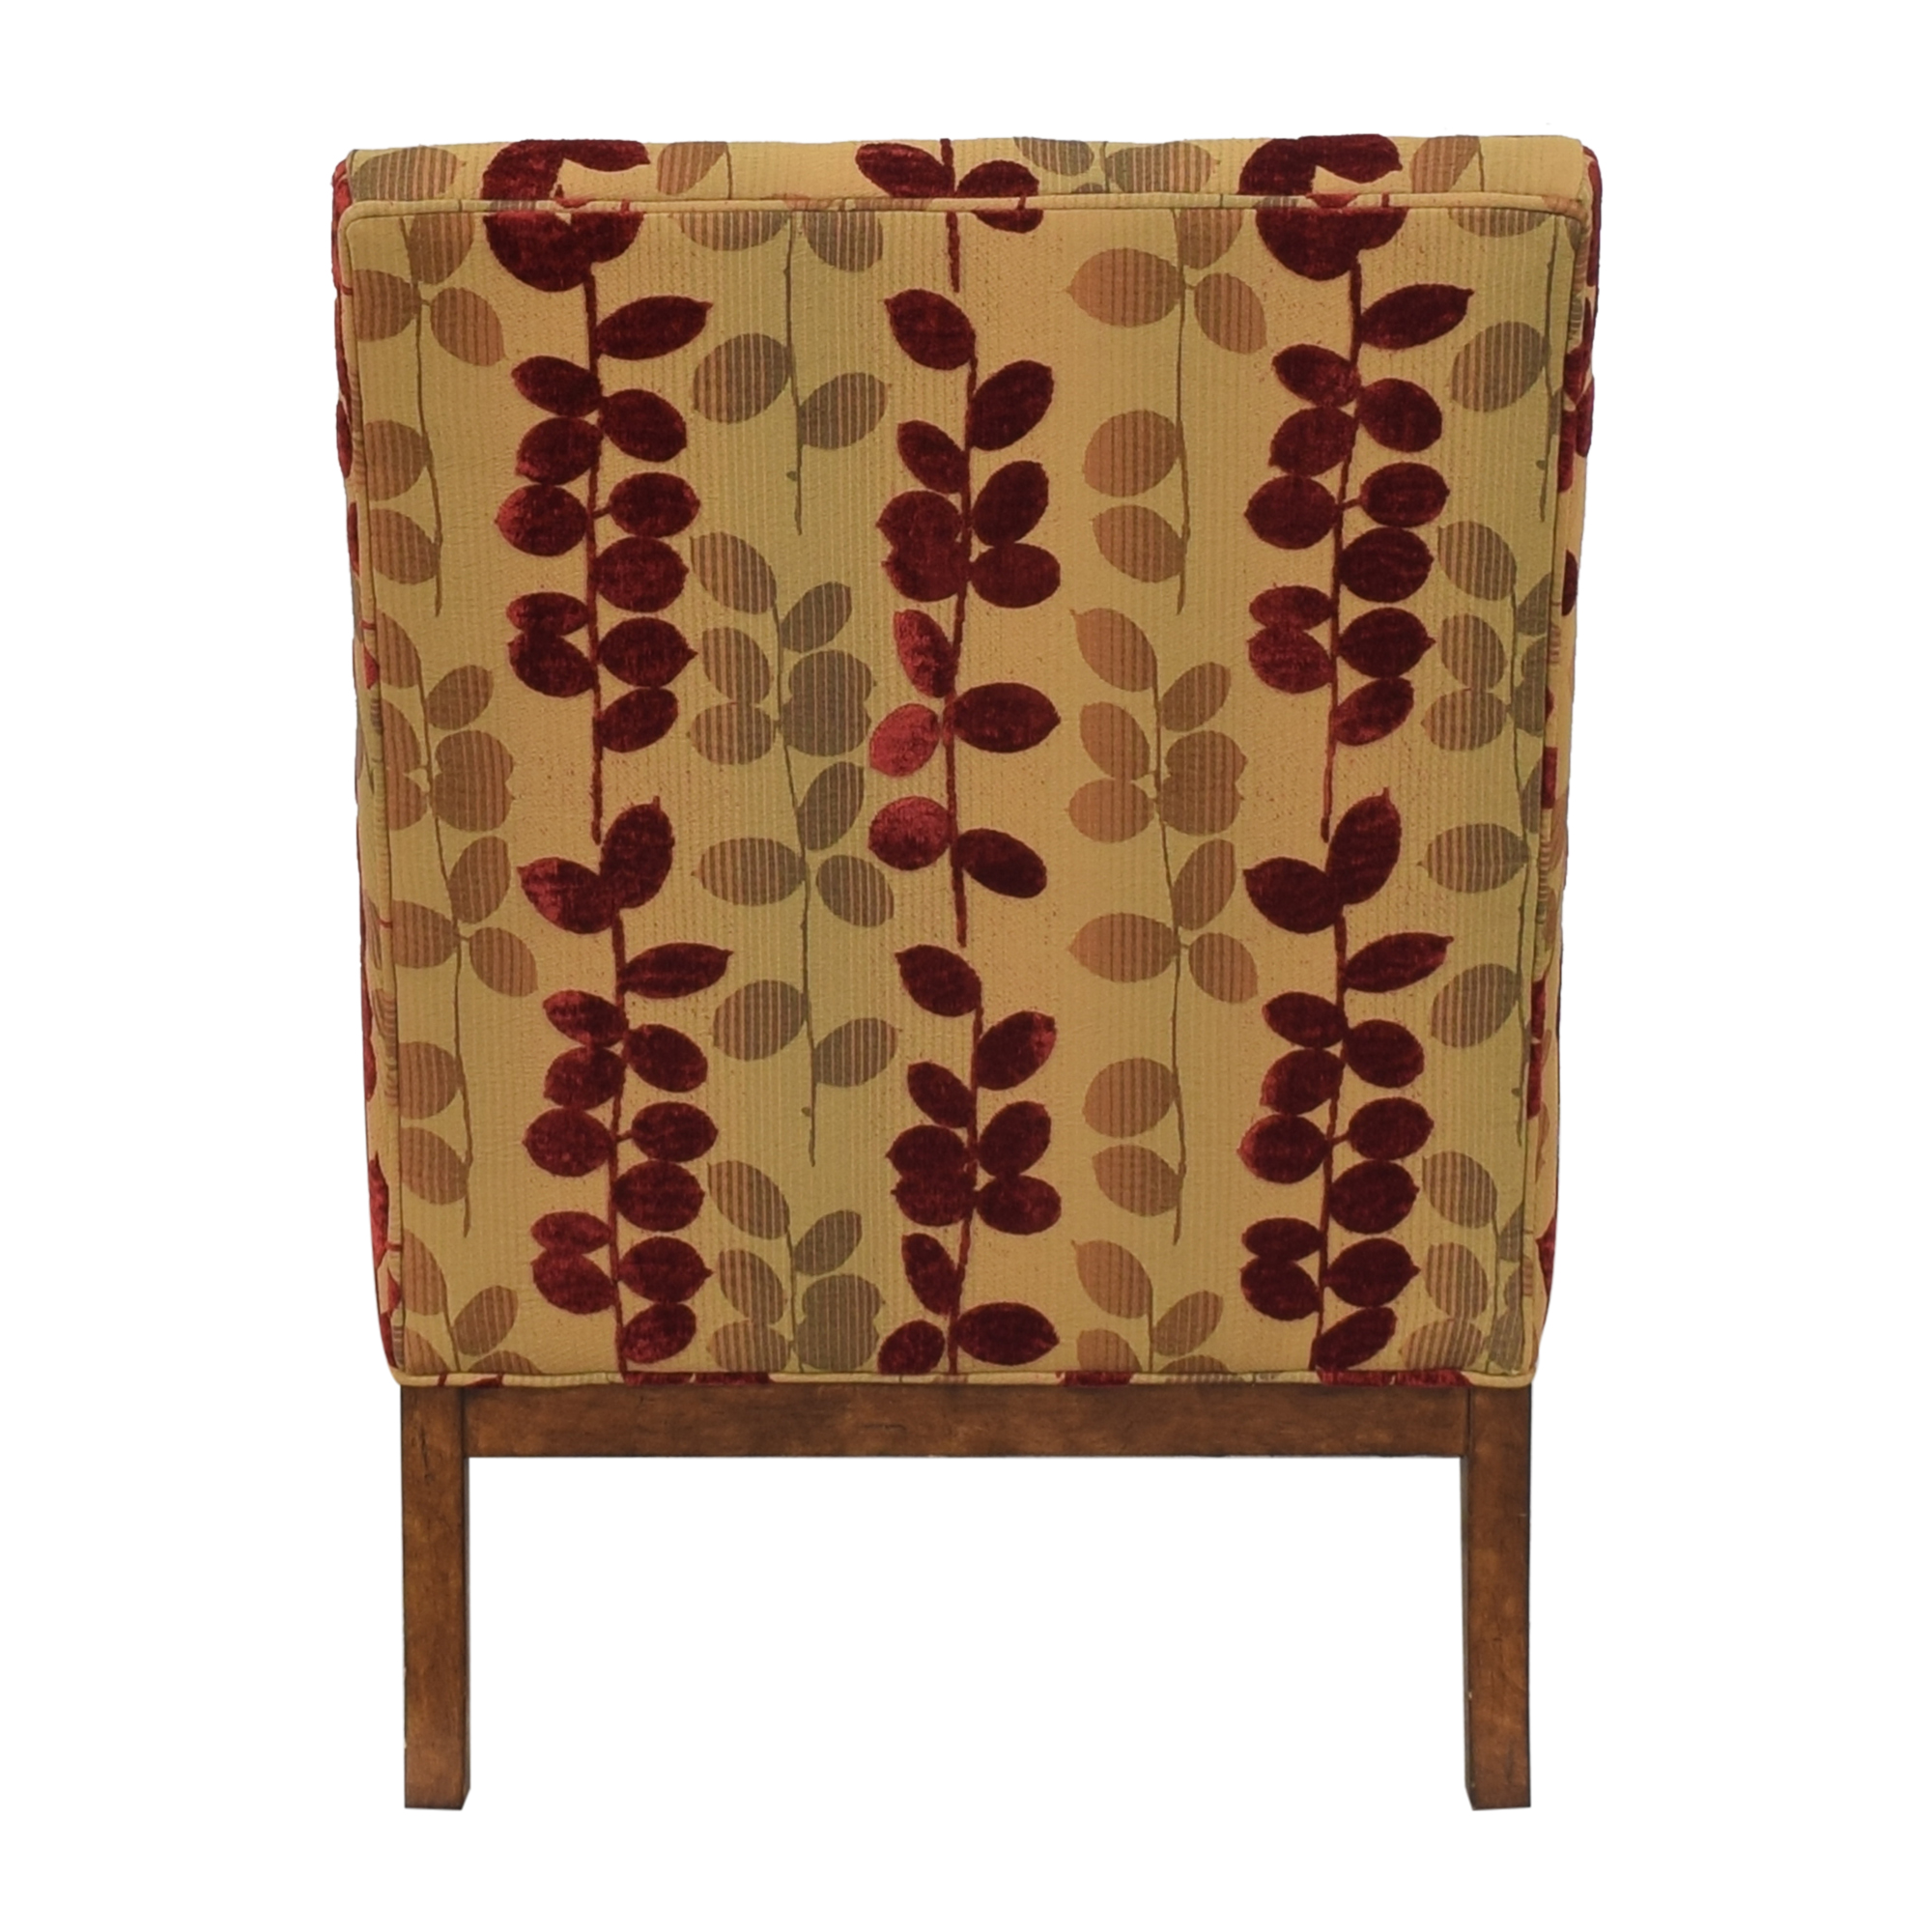 Highland House Furniture Corey Chair / Chairs